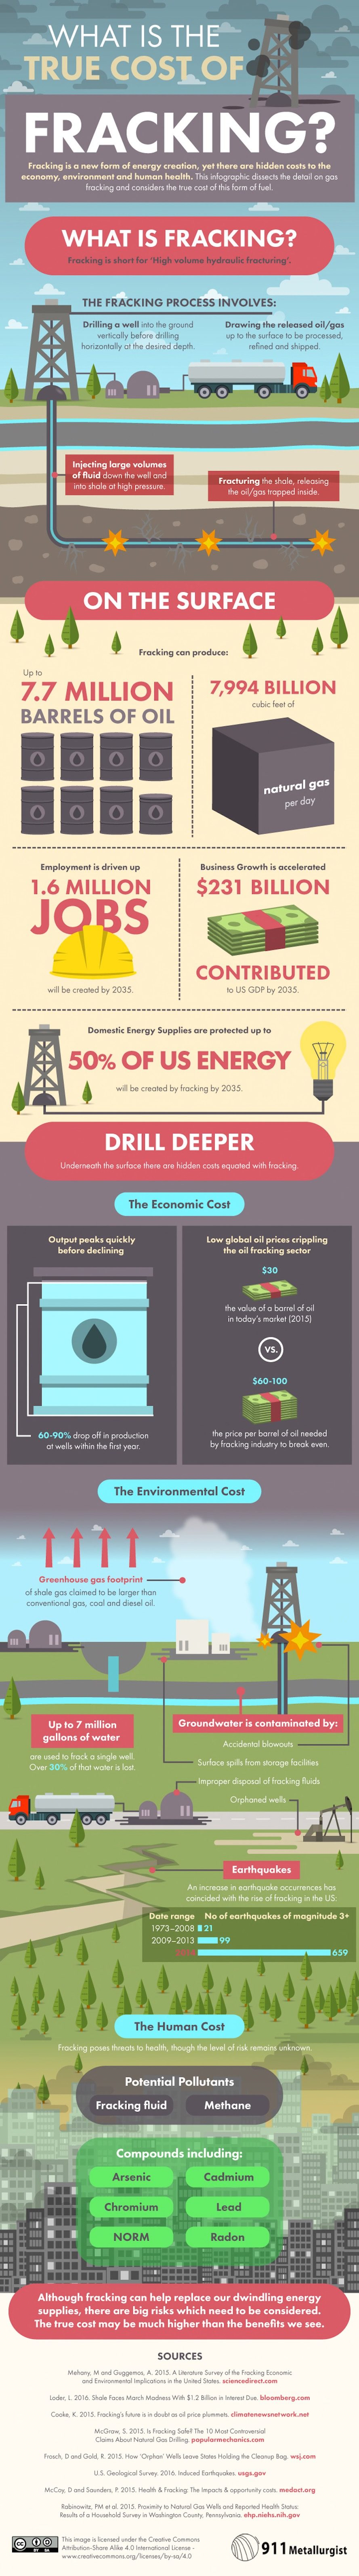 911 Metallurgist, infographic, true cost of fracking, hydraulic fracturing, fracking, reader submitted content